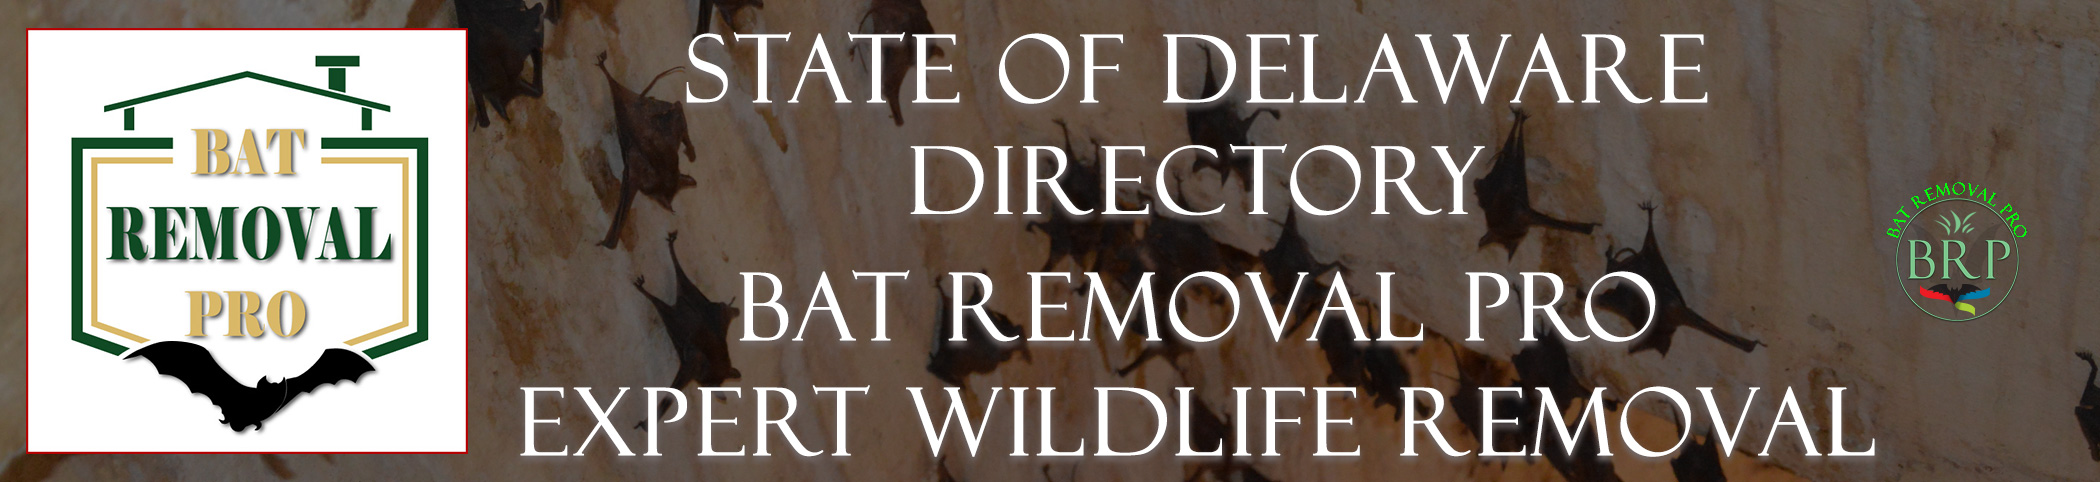 delaware-bat-removal-at-bat-removal-pro-header-image